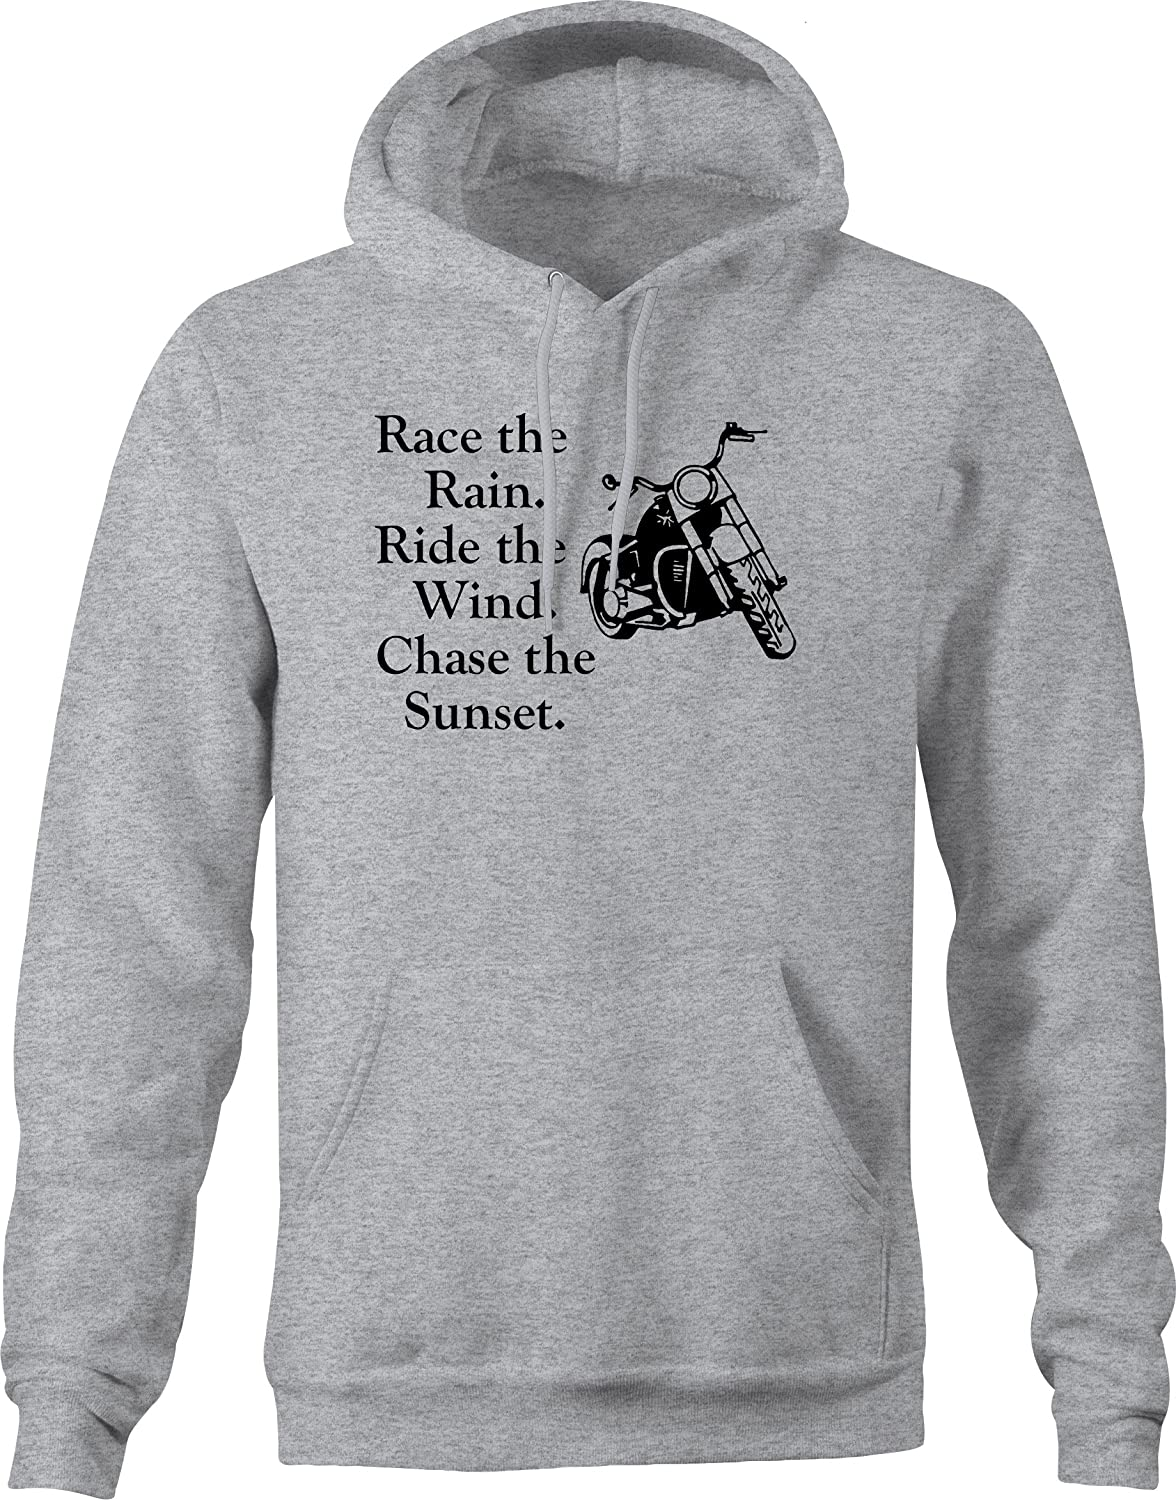 Race Rain Ride Wind Chase Sunset Motorcycle Cruiser Hooded Hoodie for Men